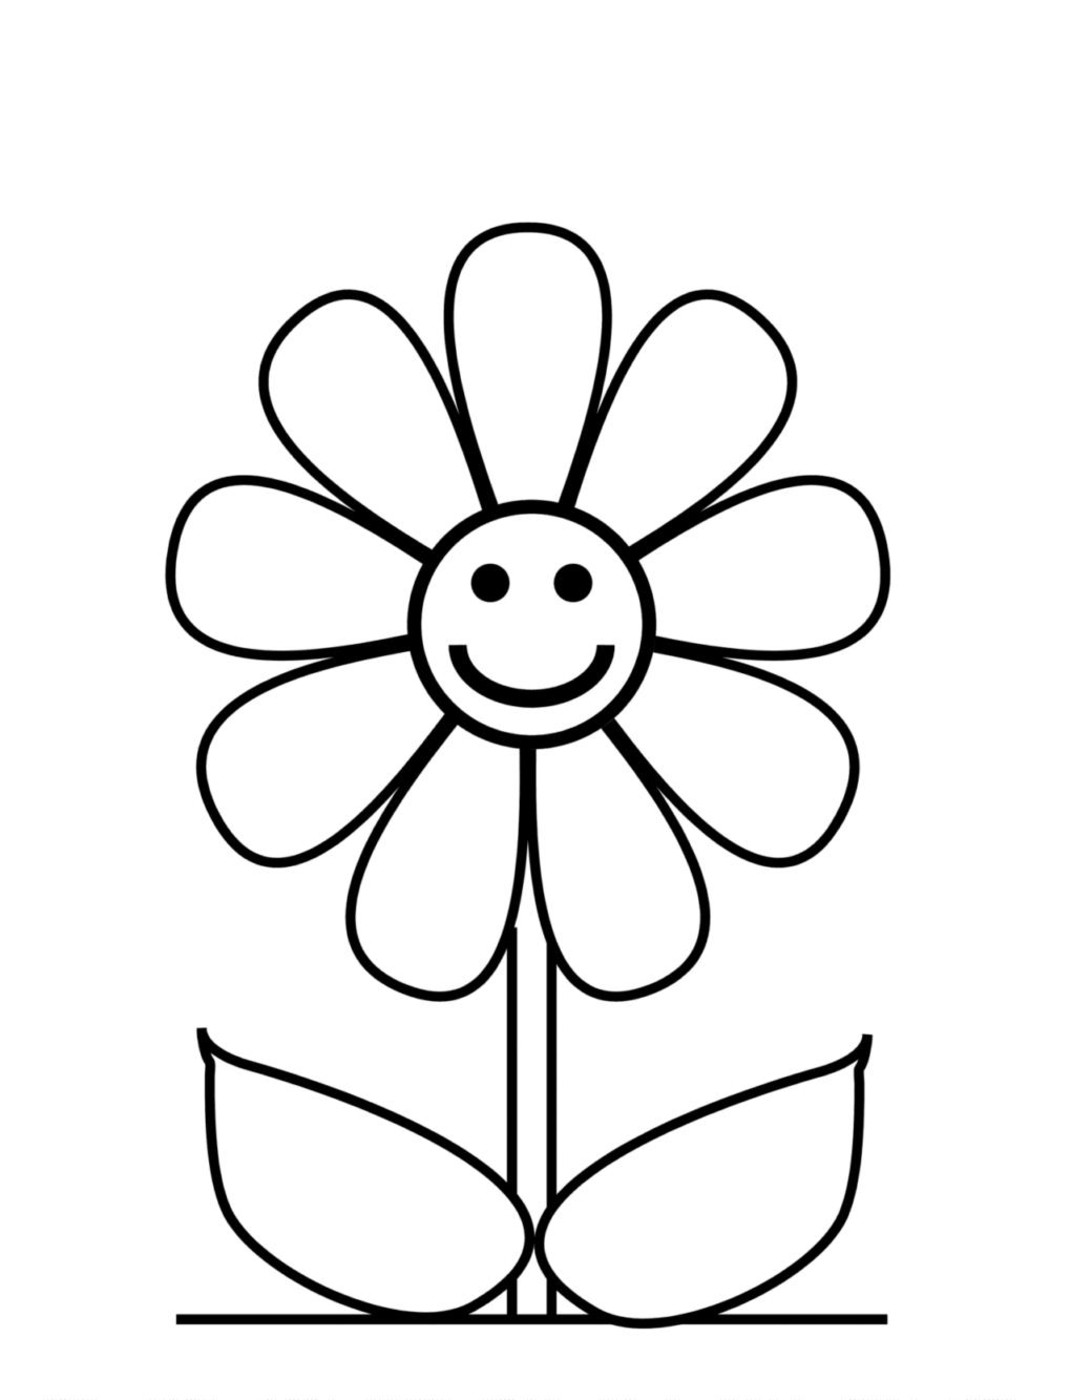 coloring pic of flower free printable flower coloring pages 16 pics how to coloring pic of flower